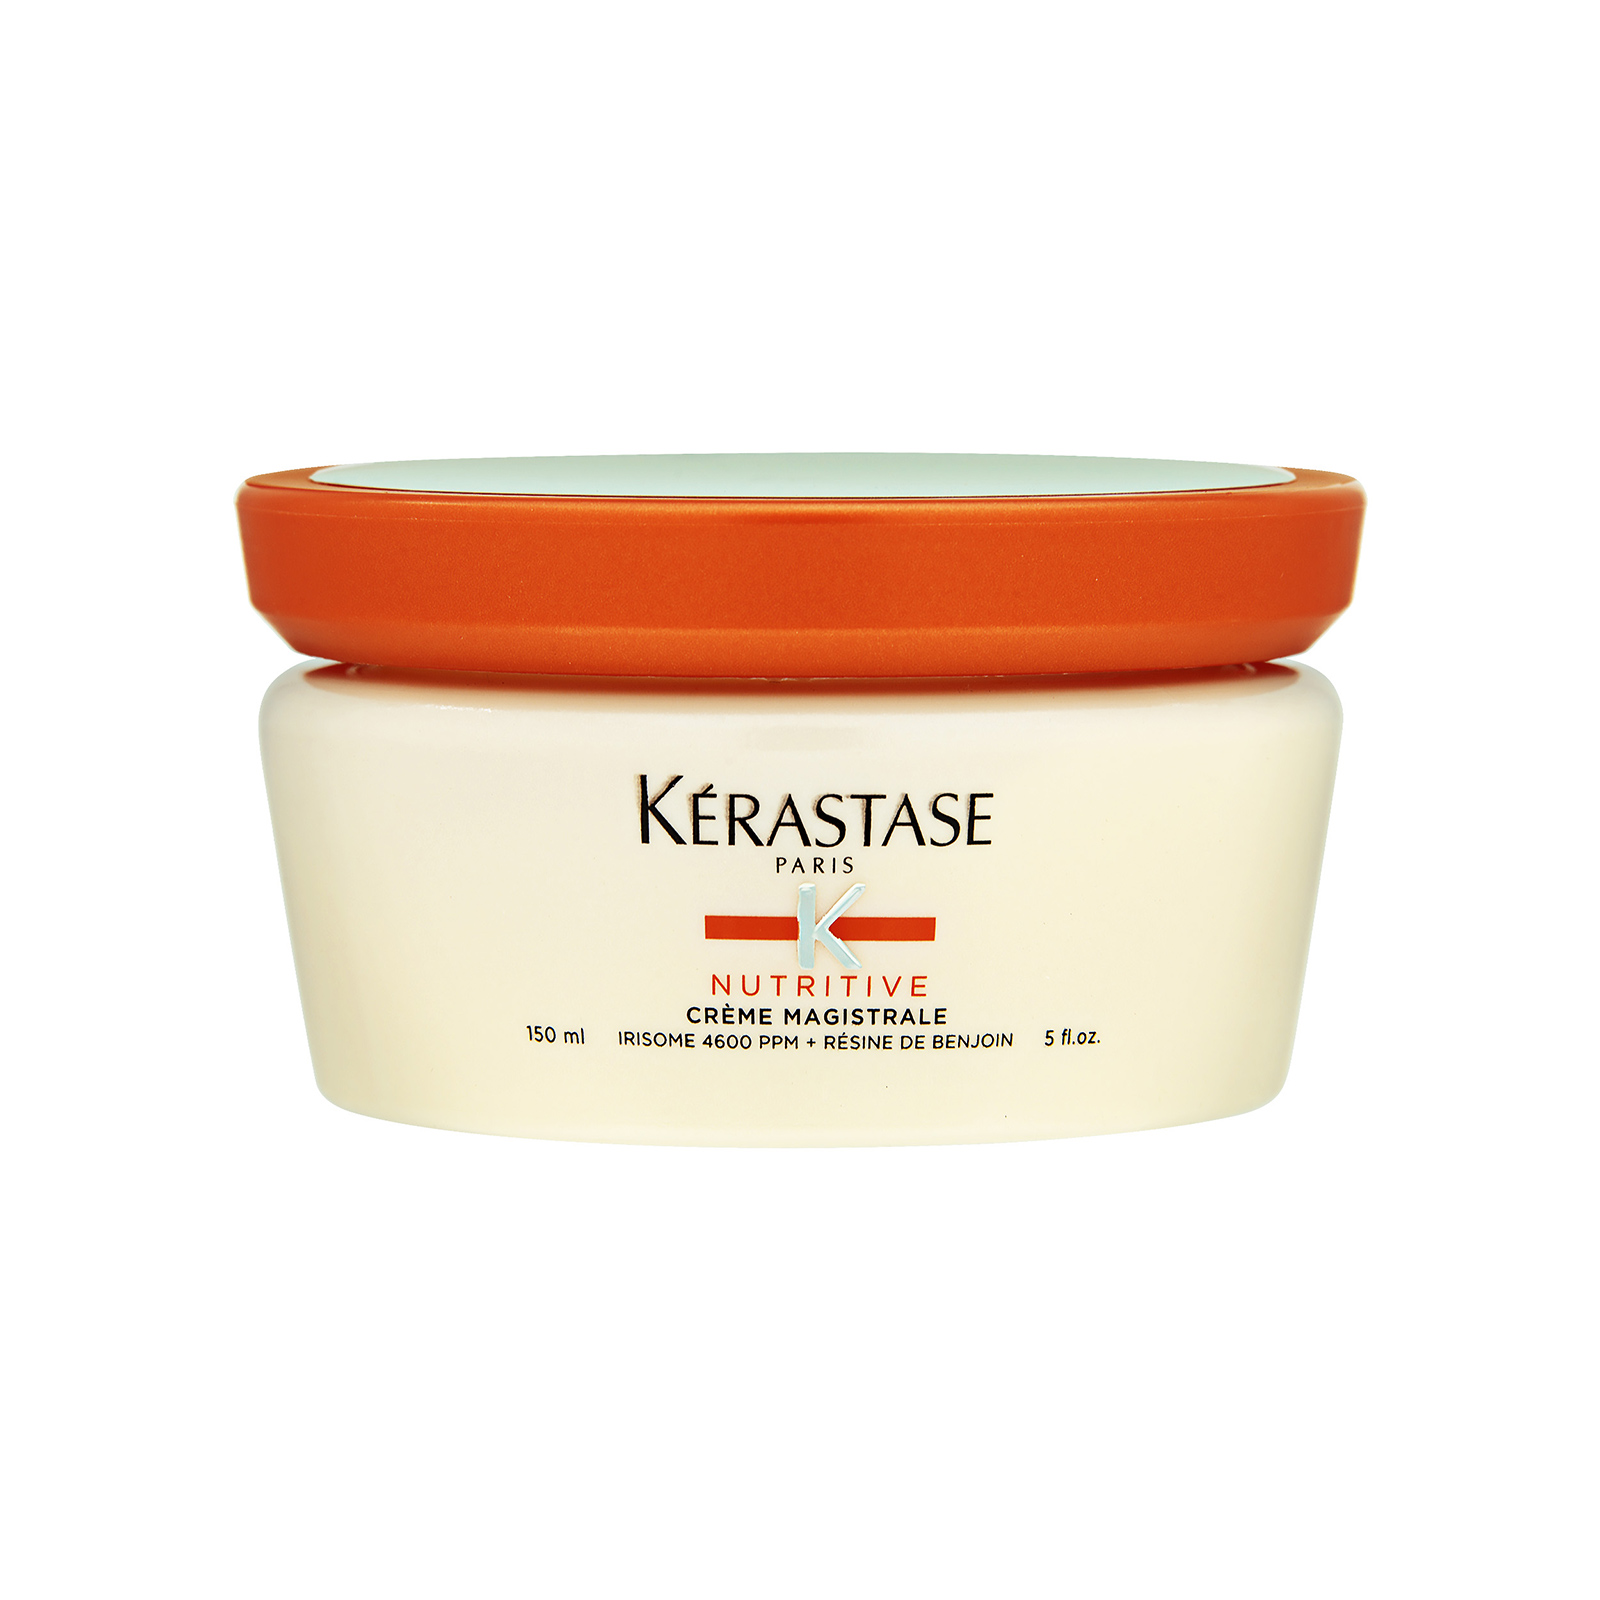 Kérastase Paris Nutritive  Magistrale Fundamental Nutrition Balm (Severely Dried-Out Hair) 5oz, 150ml